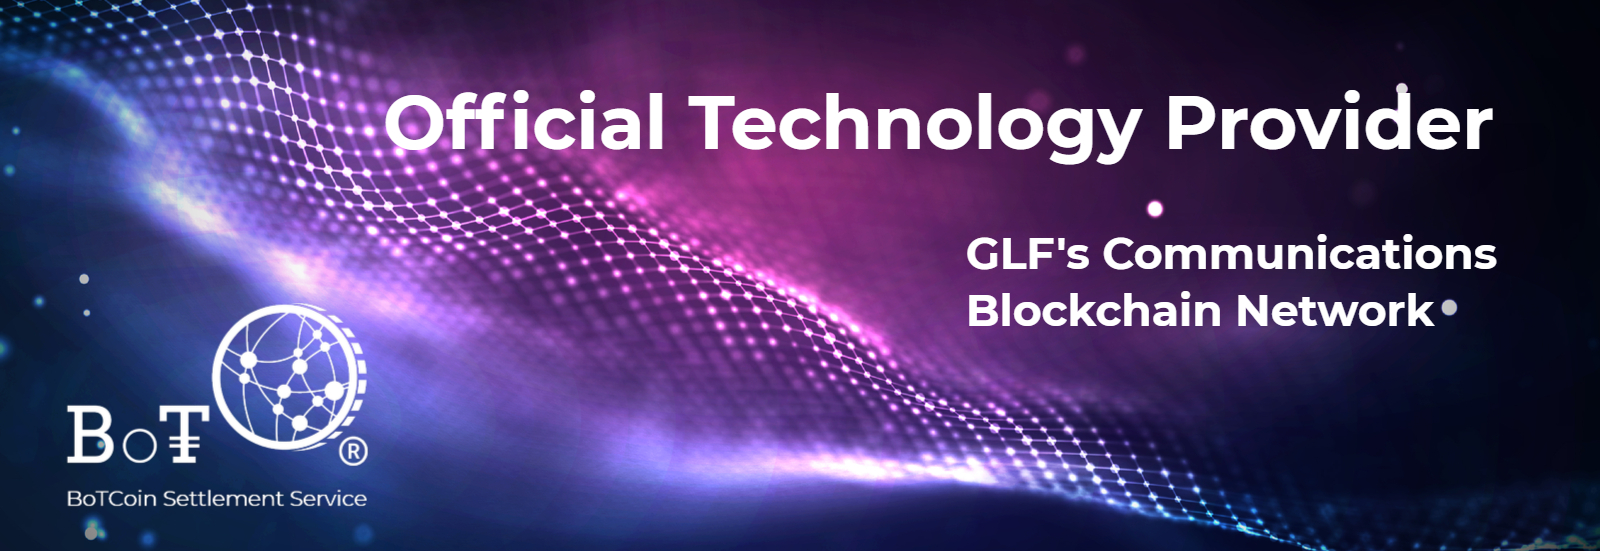 BoTCoin GLF Communications Blockchain Network